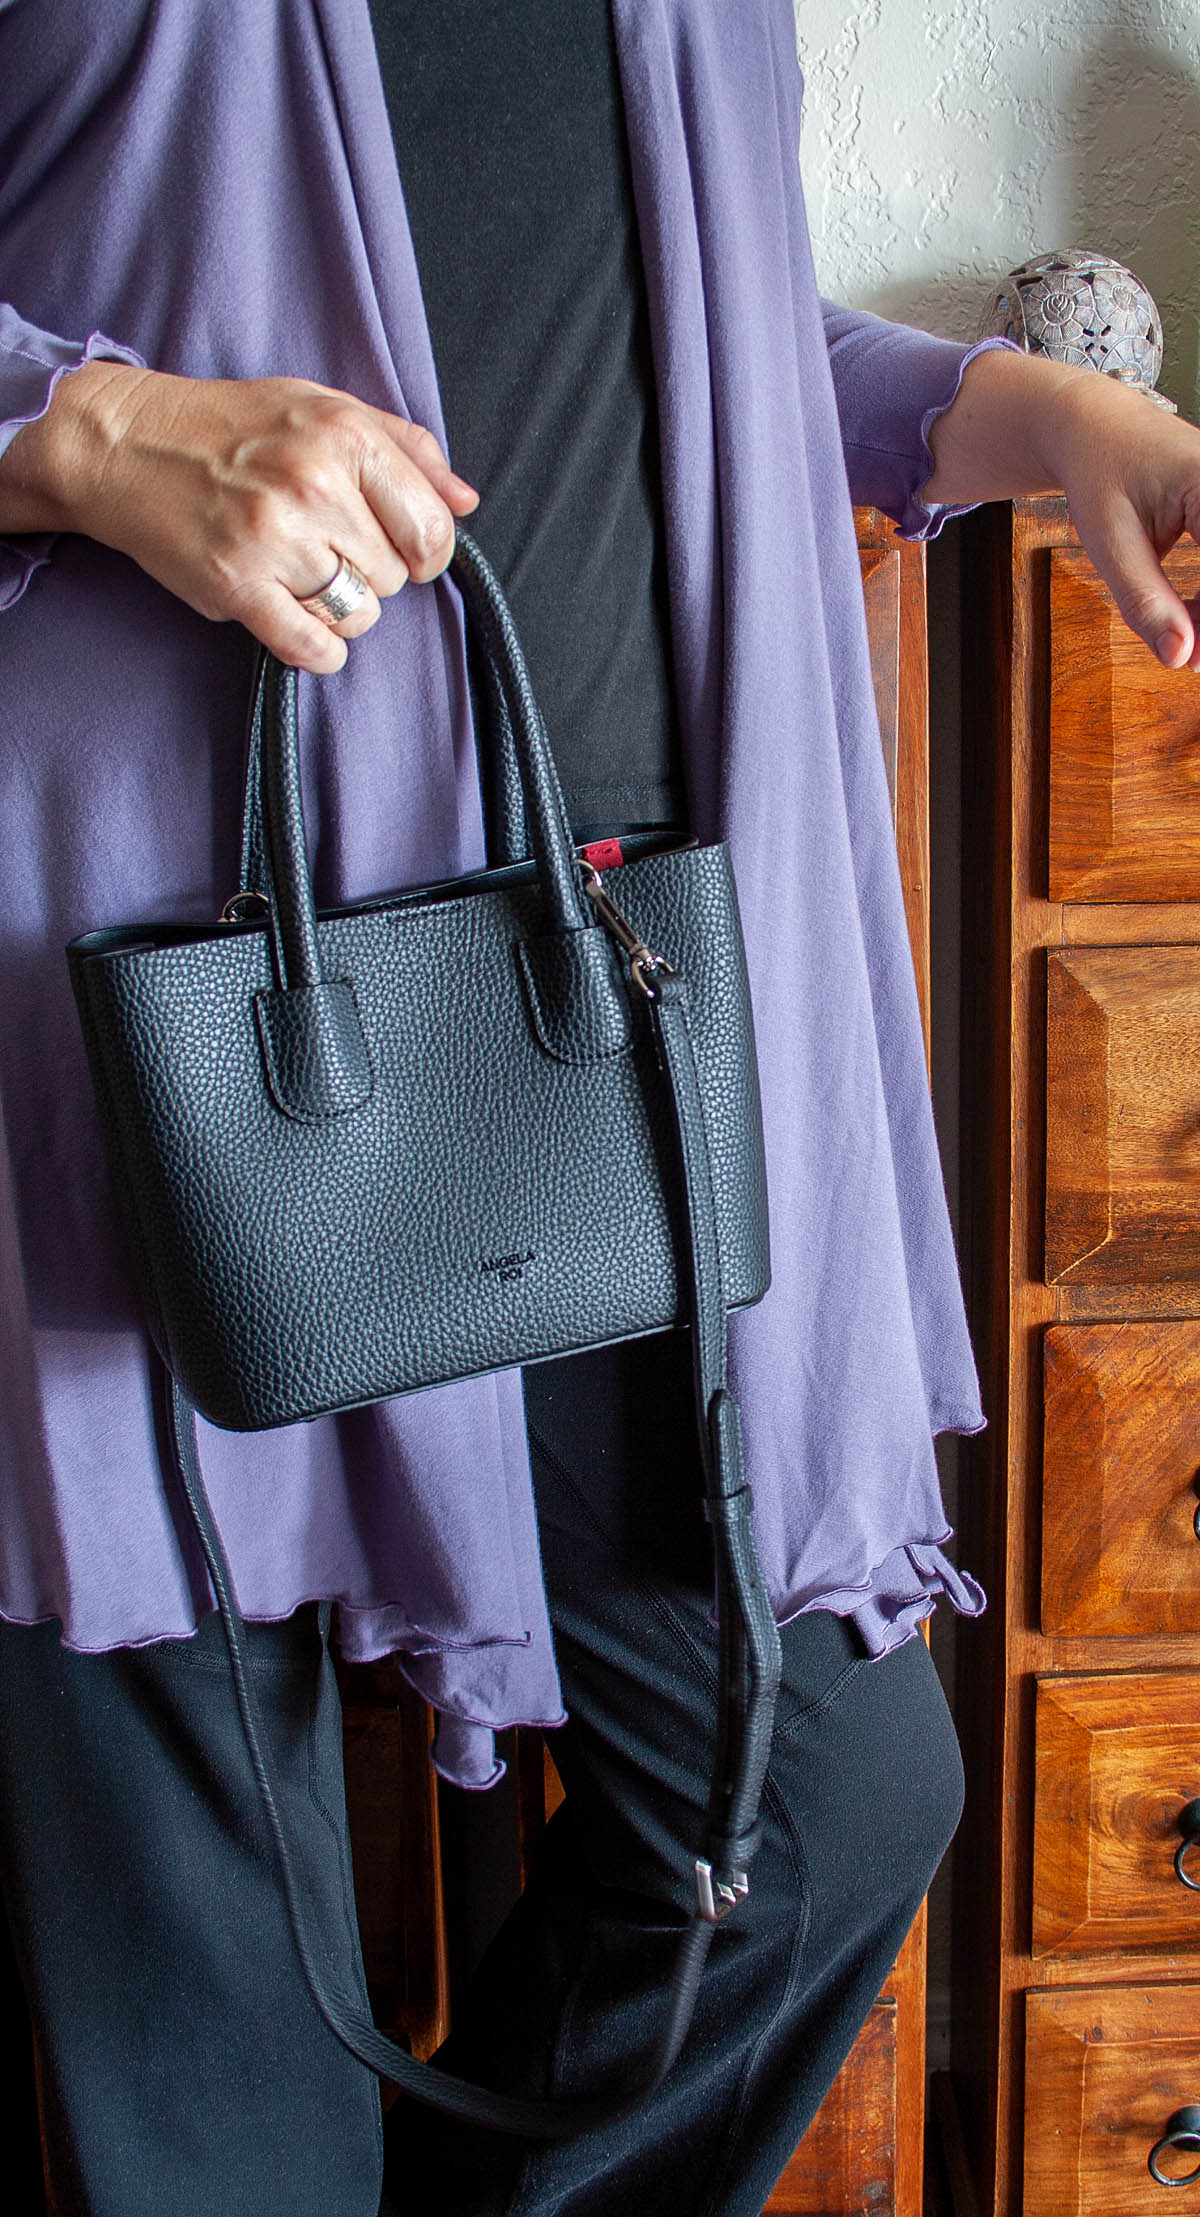 Photo of me in black pants, black t-shirt, lavender cover up and black Cher Micro handbag in my hand.